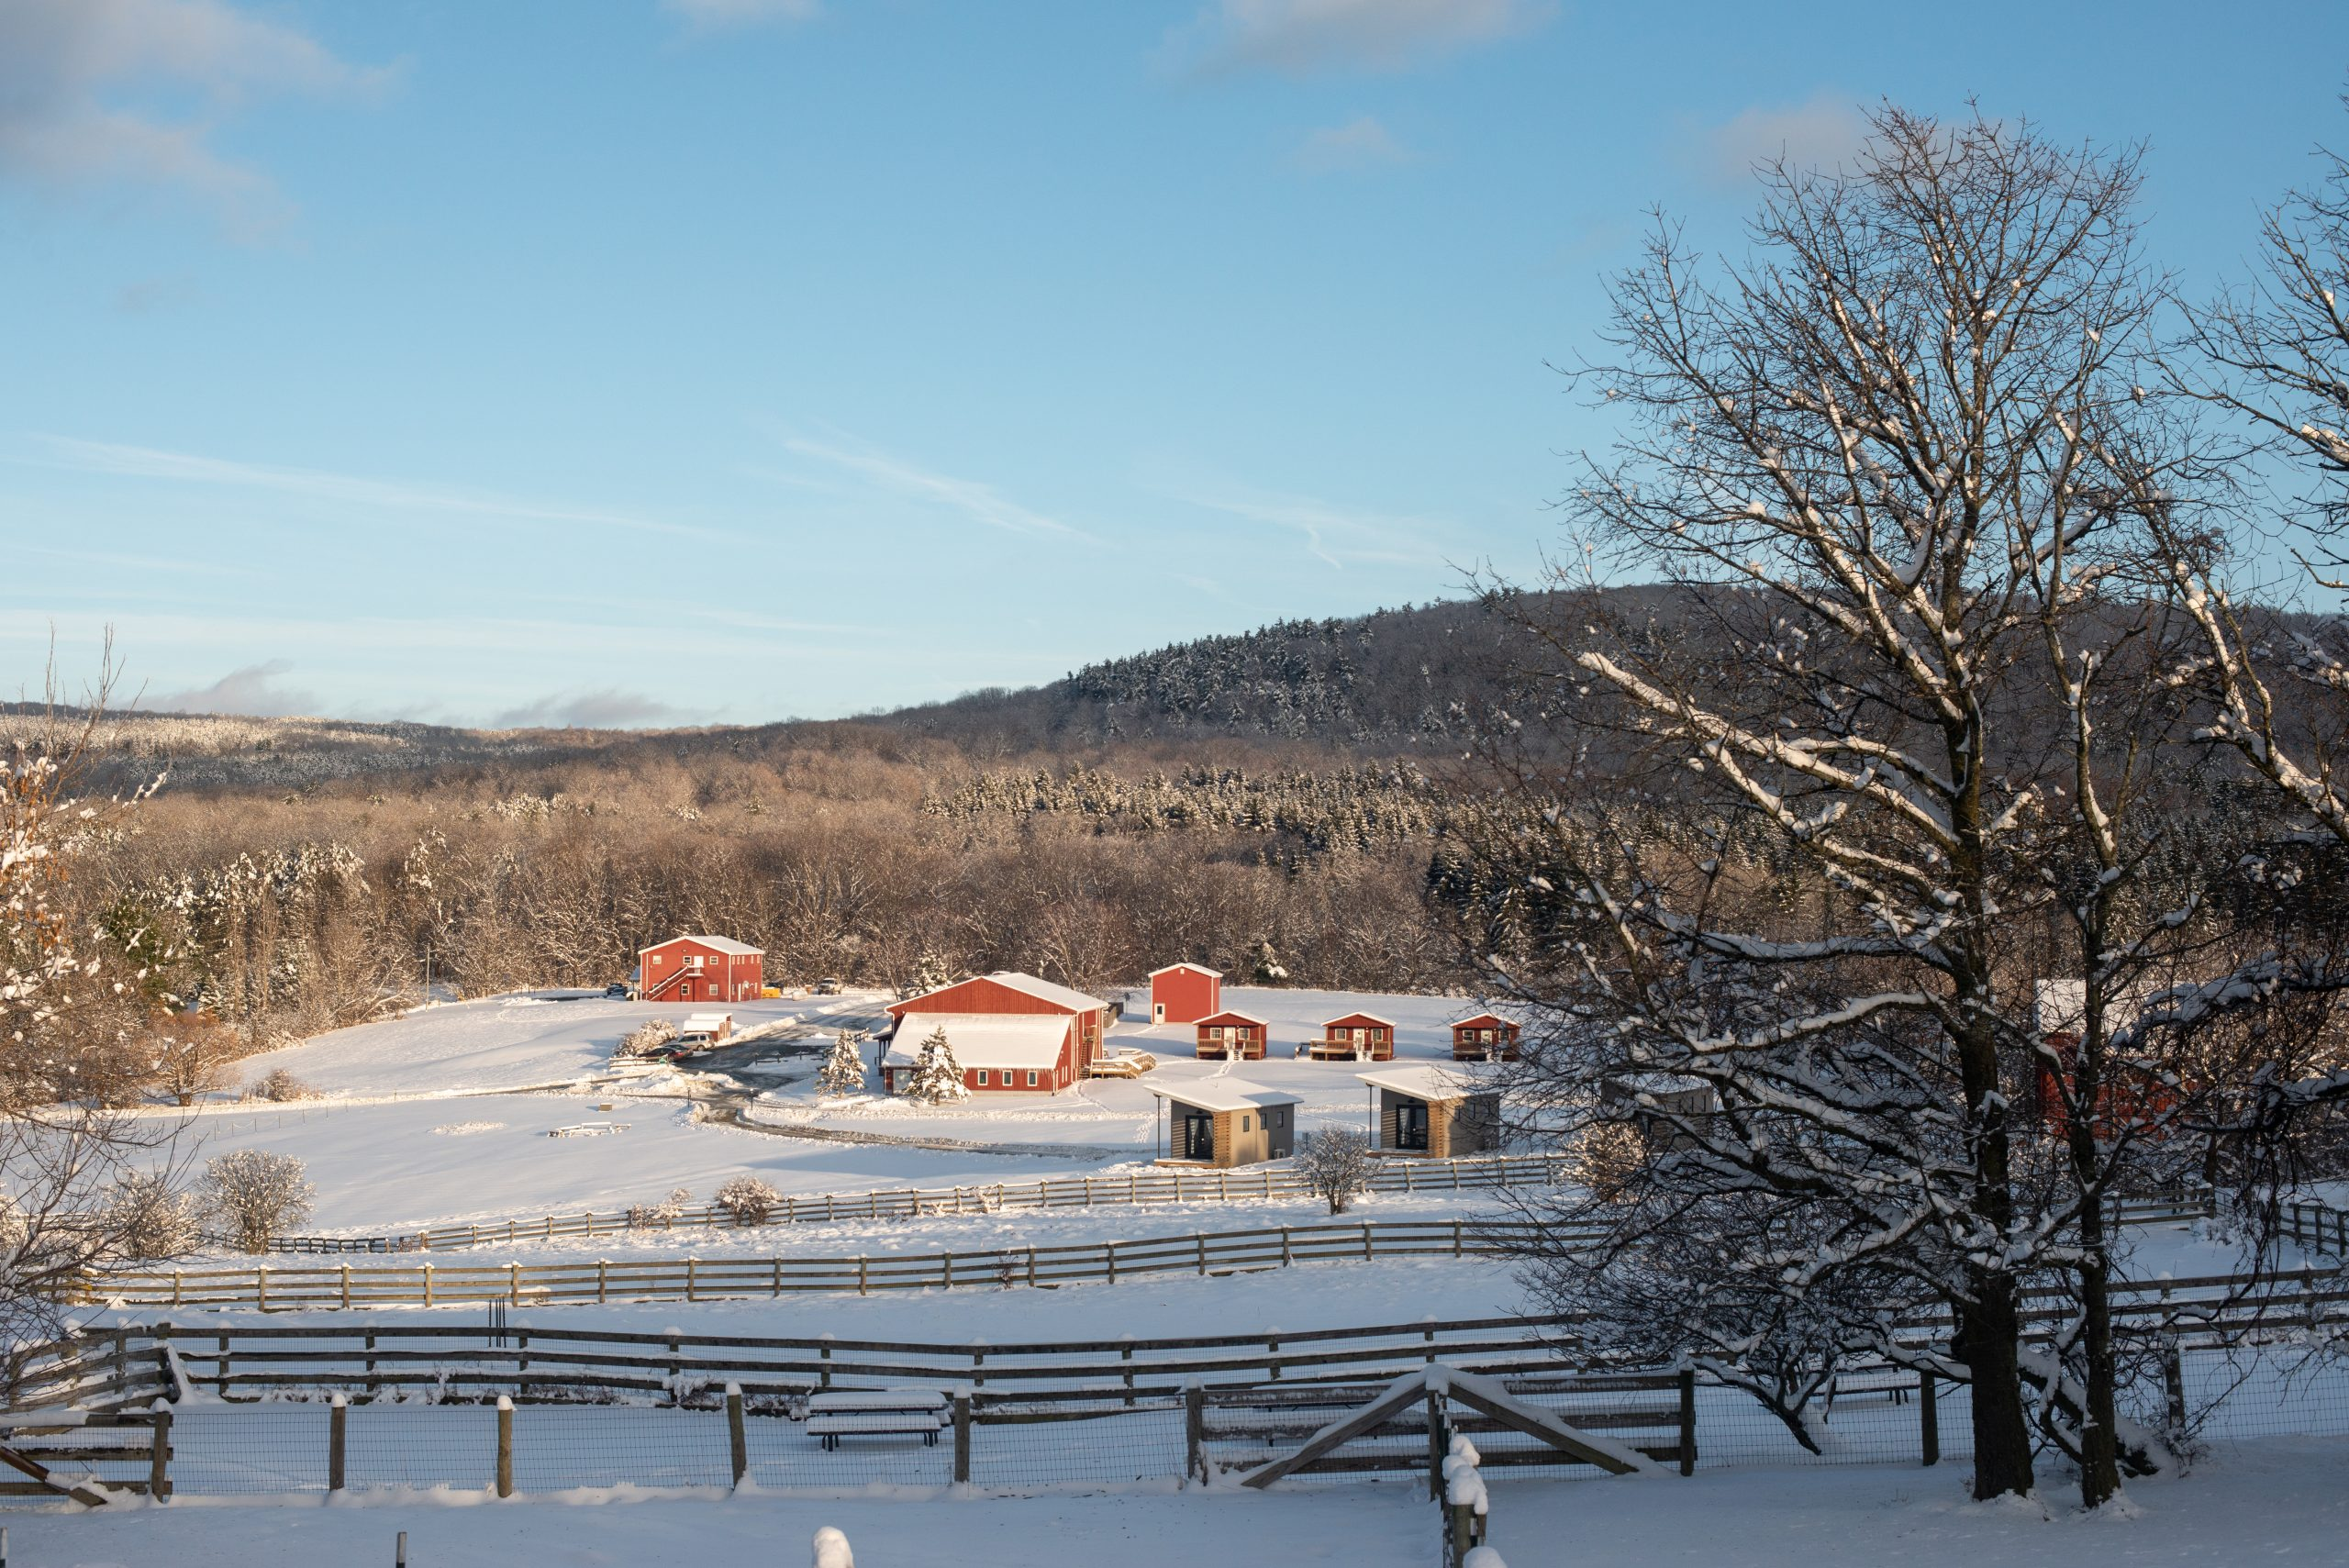 Snowy landscape at Farm Sanctuary